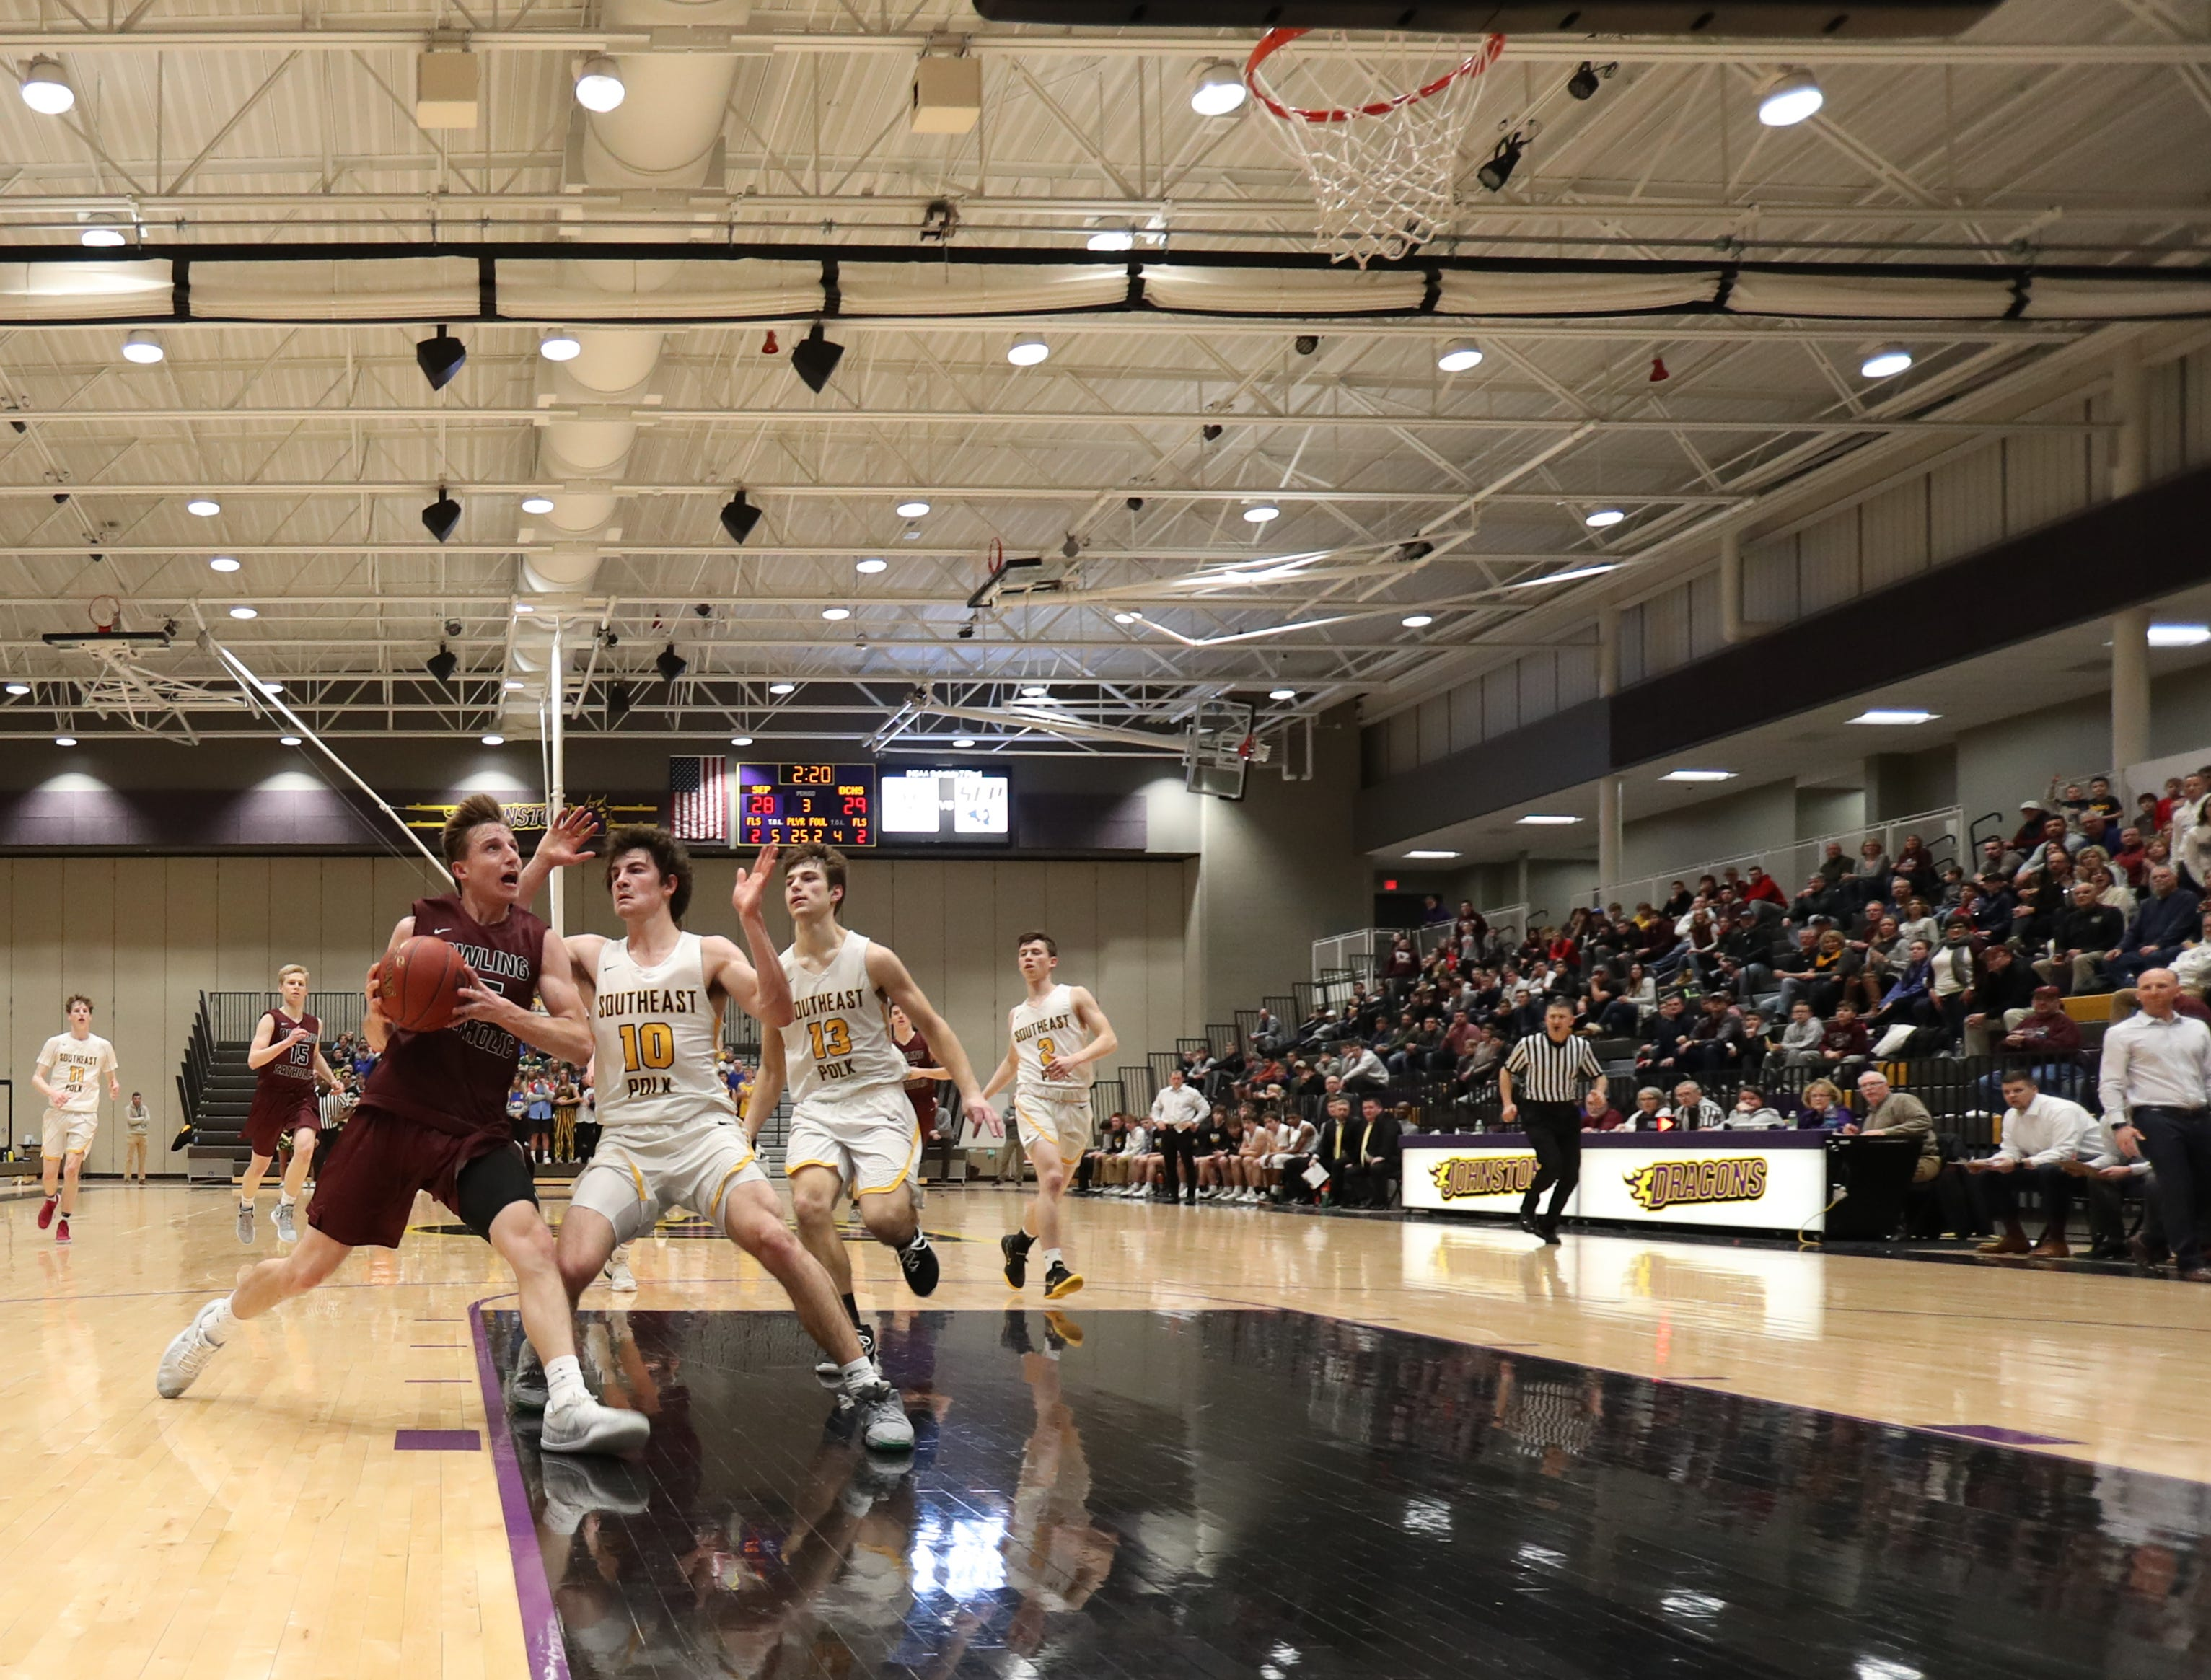 Dowling Catholic's Matt Stilwill (25) drives past Southeast Polk's Rams Daniel Hackbarth (10) during their game at Johnston High School in Johnston, Iowa, on Tuesday, Feb. 26, 2019. Dowling won the game 44-40 to advance to state.